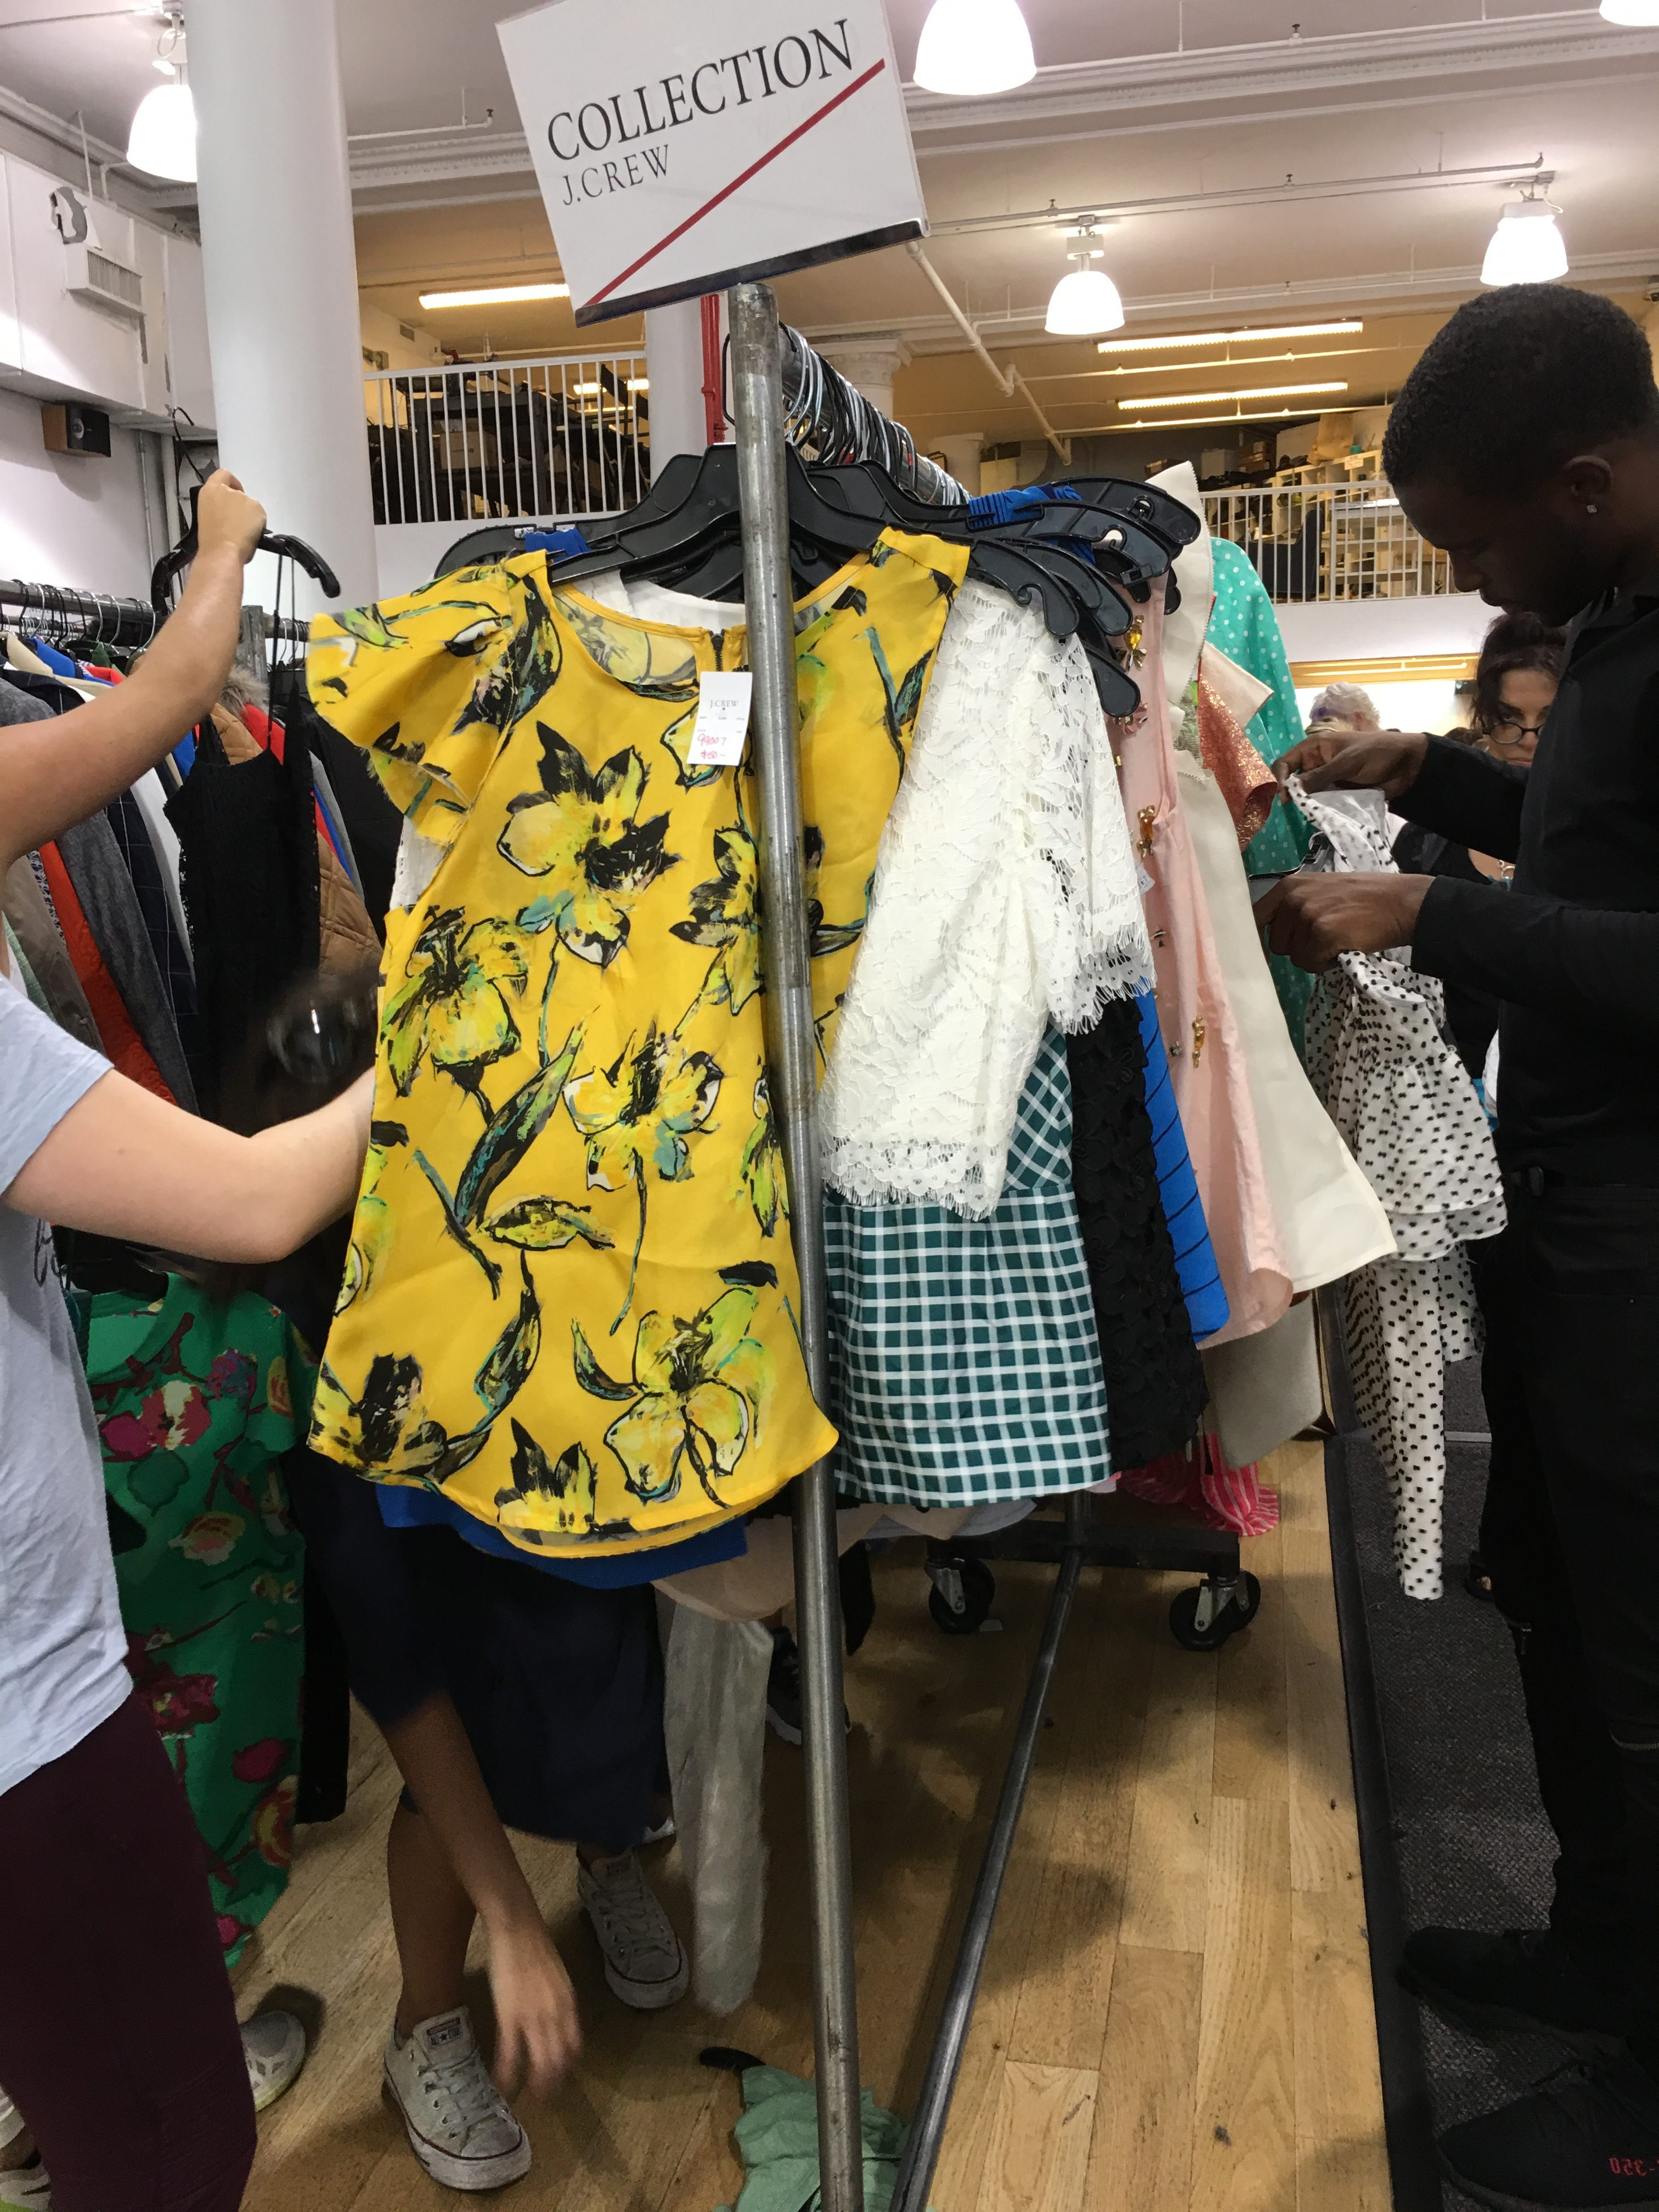 sample sales nyc, sample sales ny, jcrew sample sale, where to find sample sales in nyc